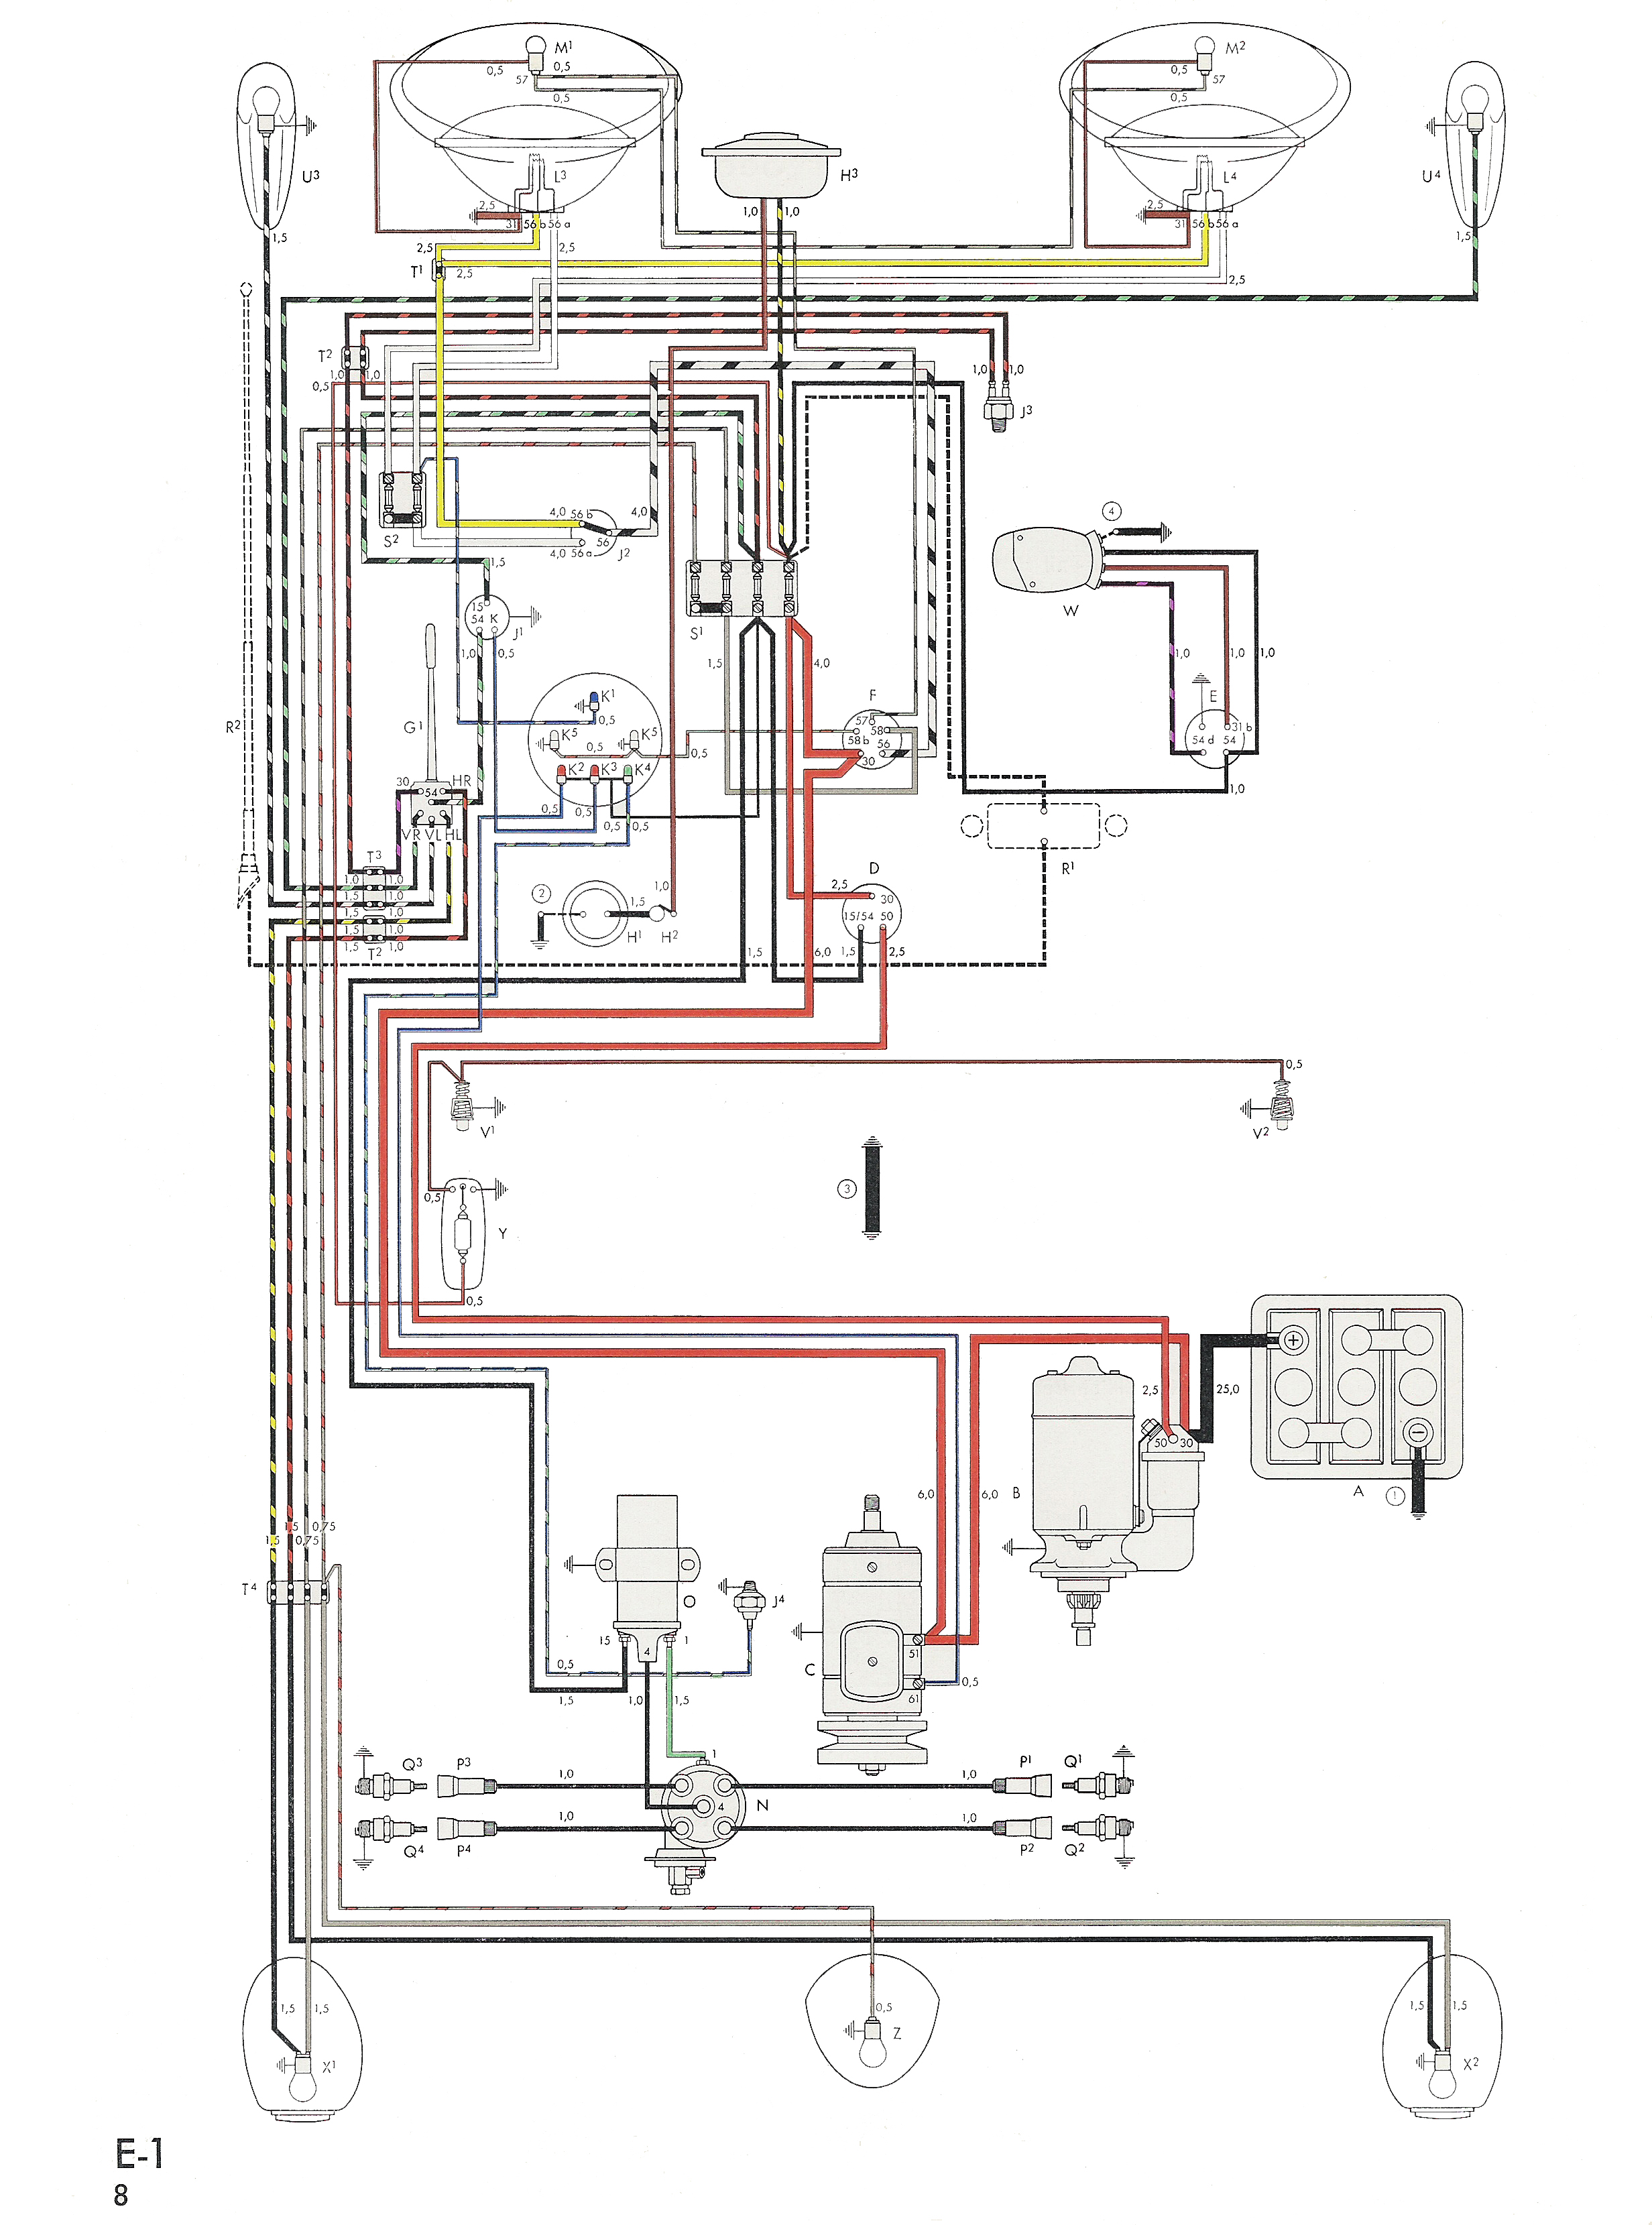 Distributor Wire Diagram Simple Guide About Wiring 305 Chevy Engine Thesamba Com Type 1 Diagrams Hei